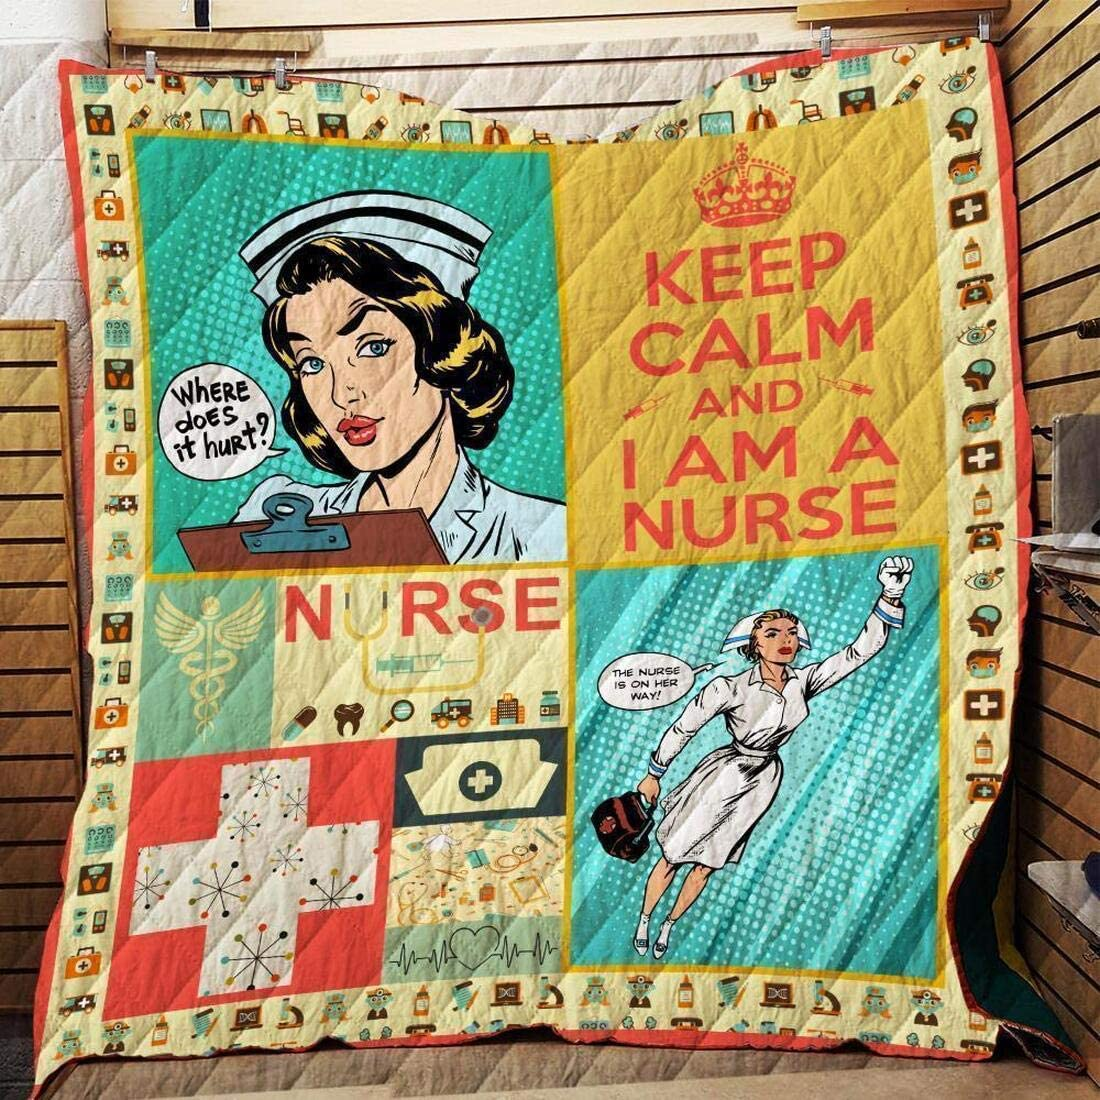 ENCYCOM Nurse Retro In a popularity Quilt Ultra-Cheap Deals Patrick's - Gift Size Day King